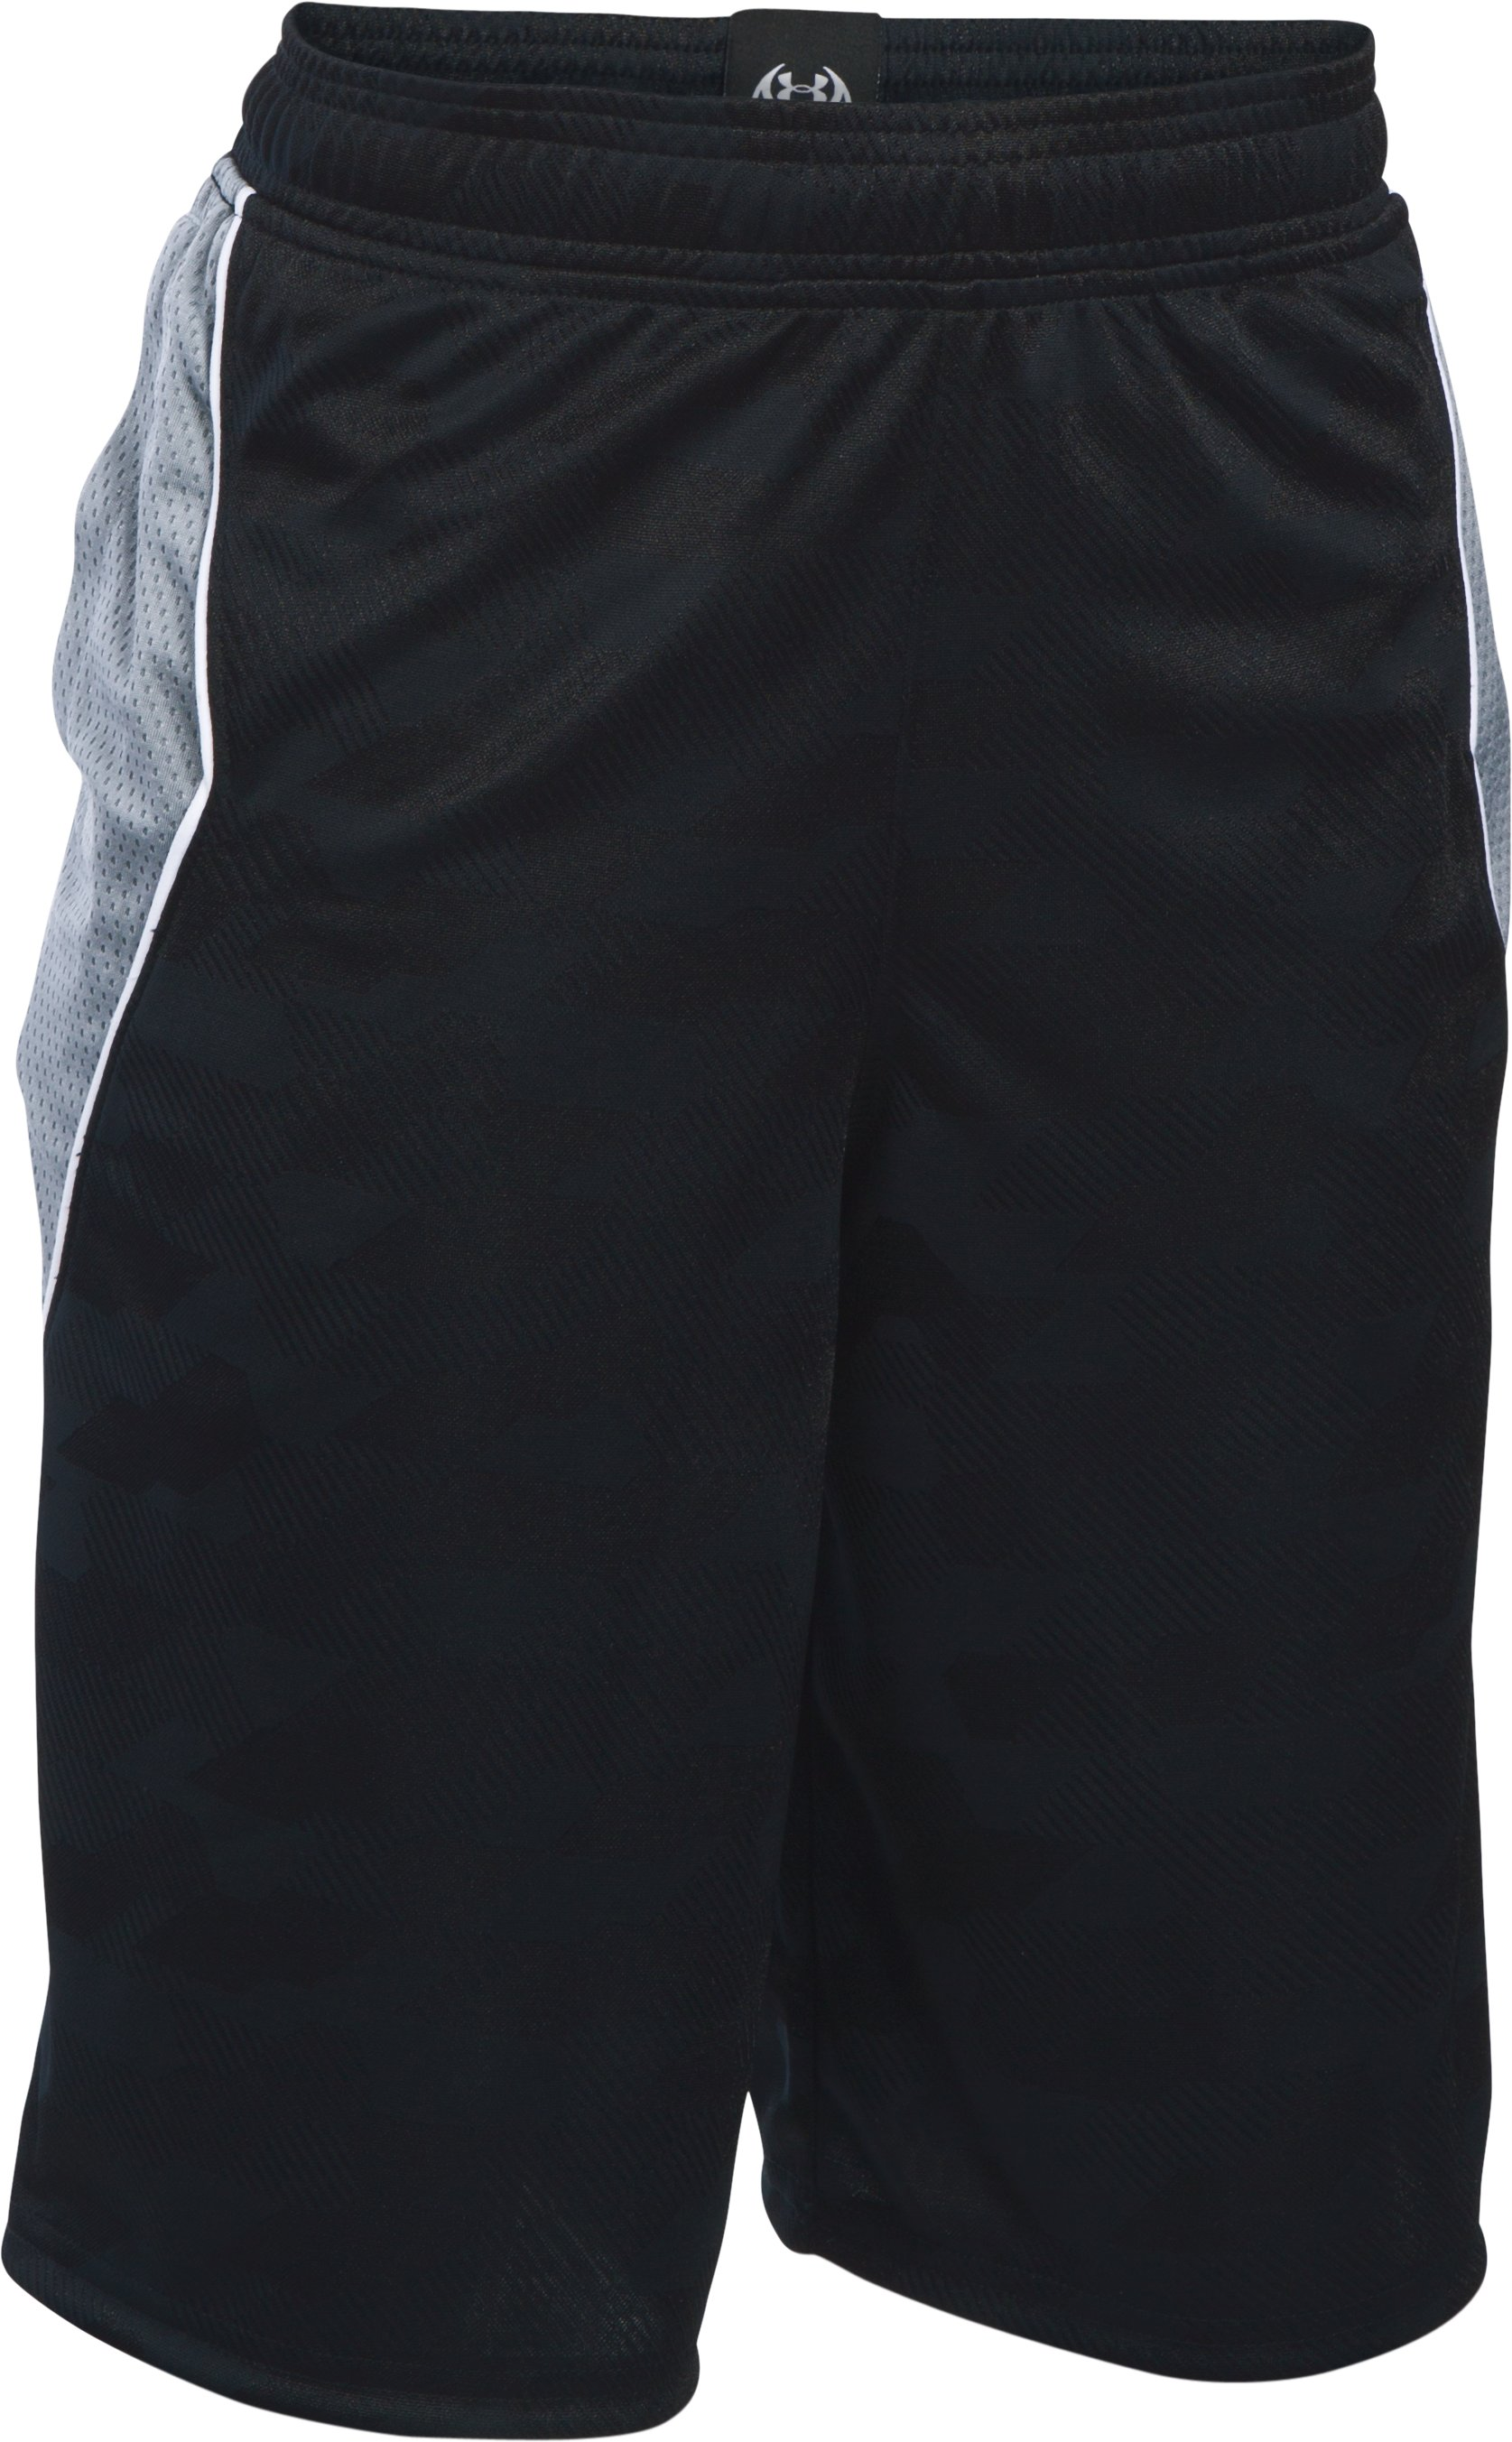 Boys' SC30 Essentials Printed Shorts, Black , undefined